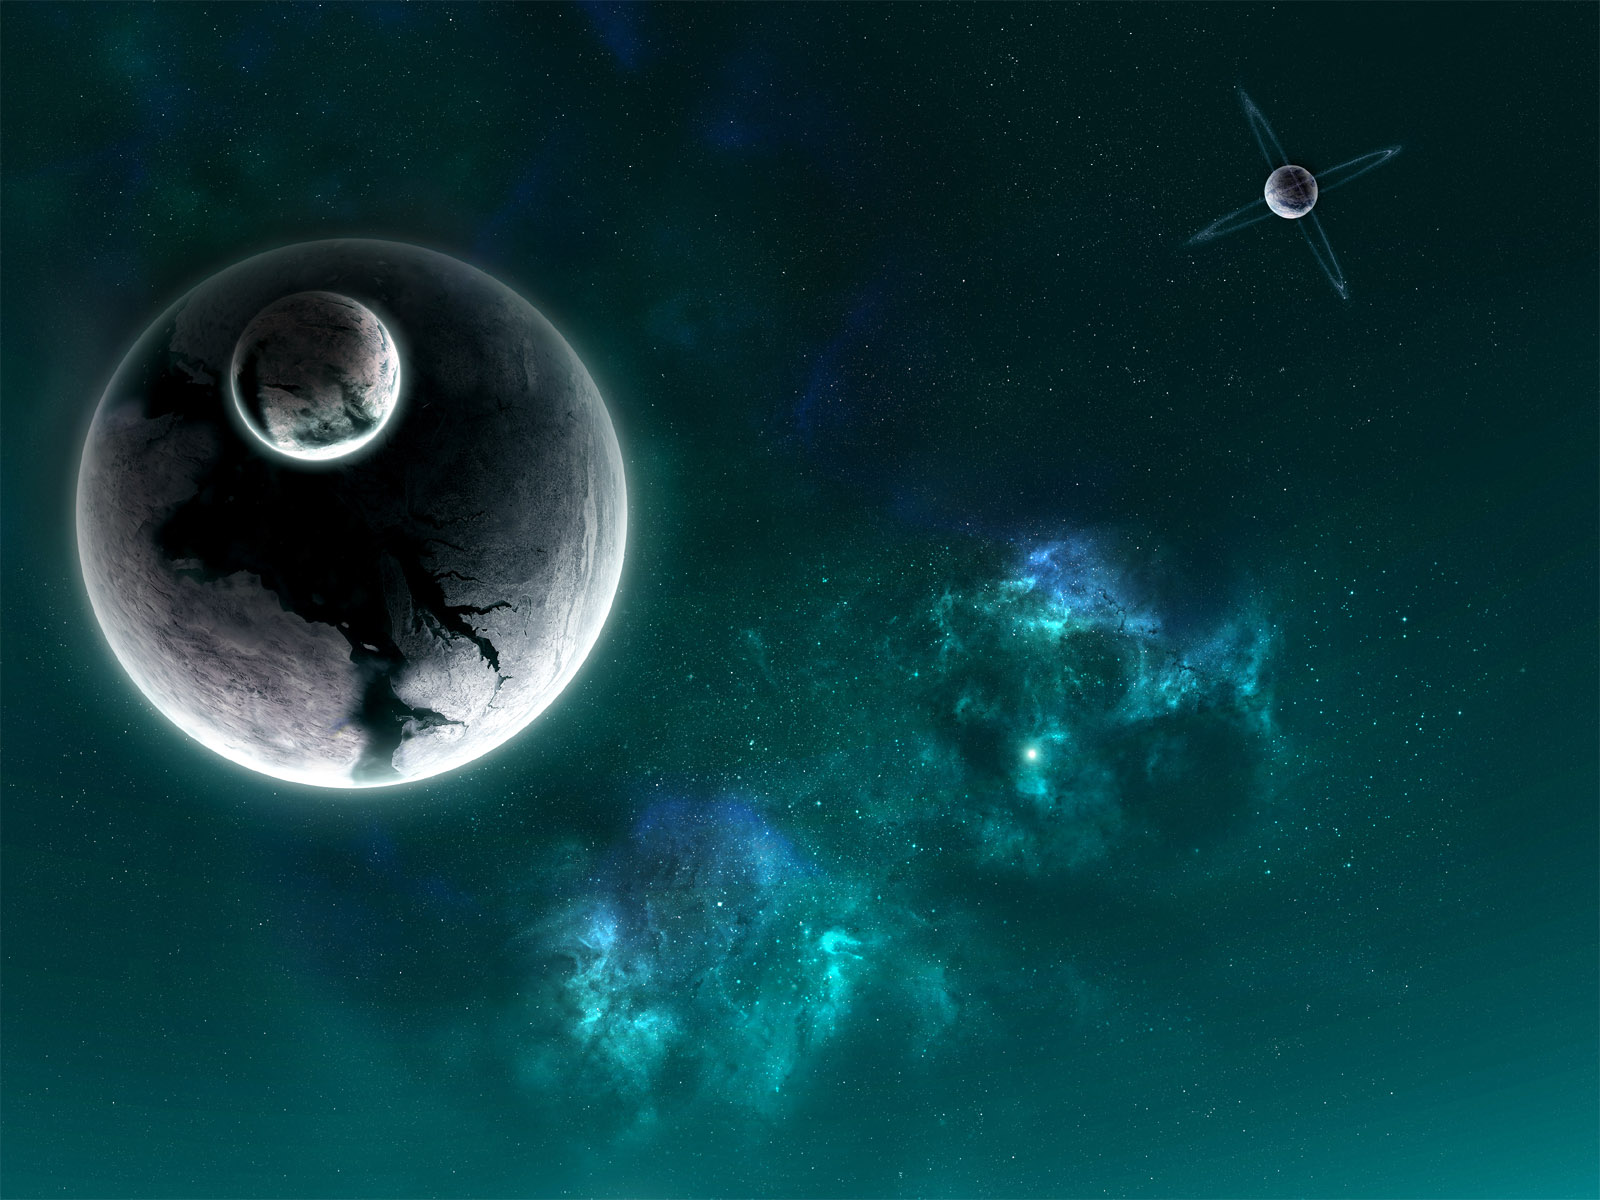 Beautiful space wallpapers #6